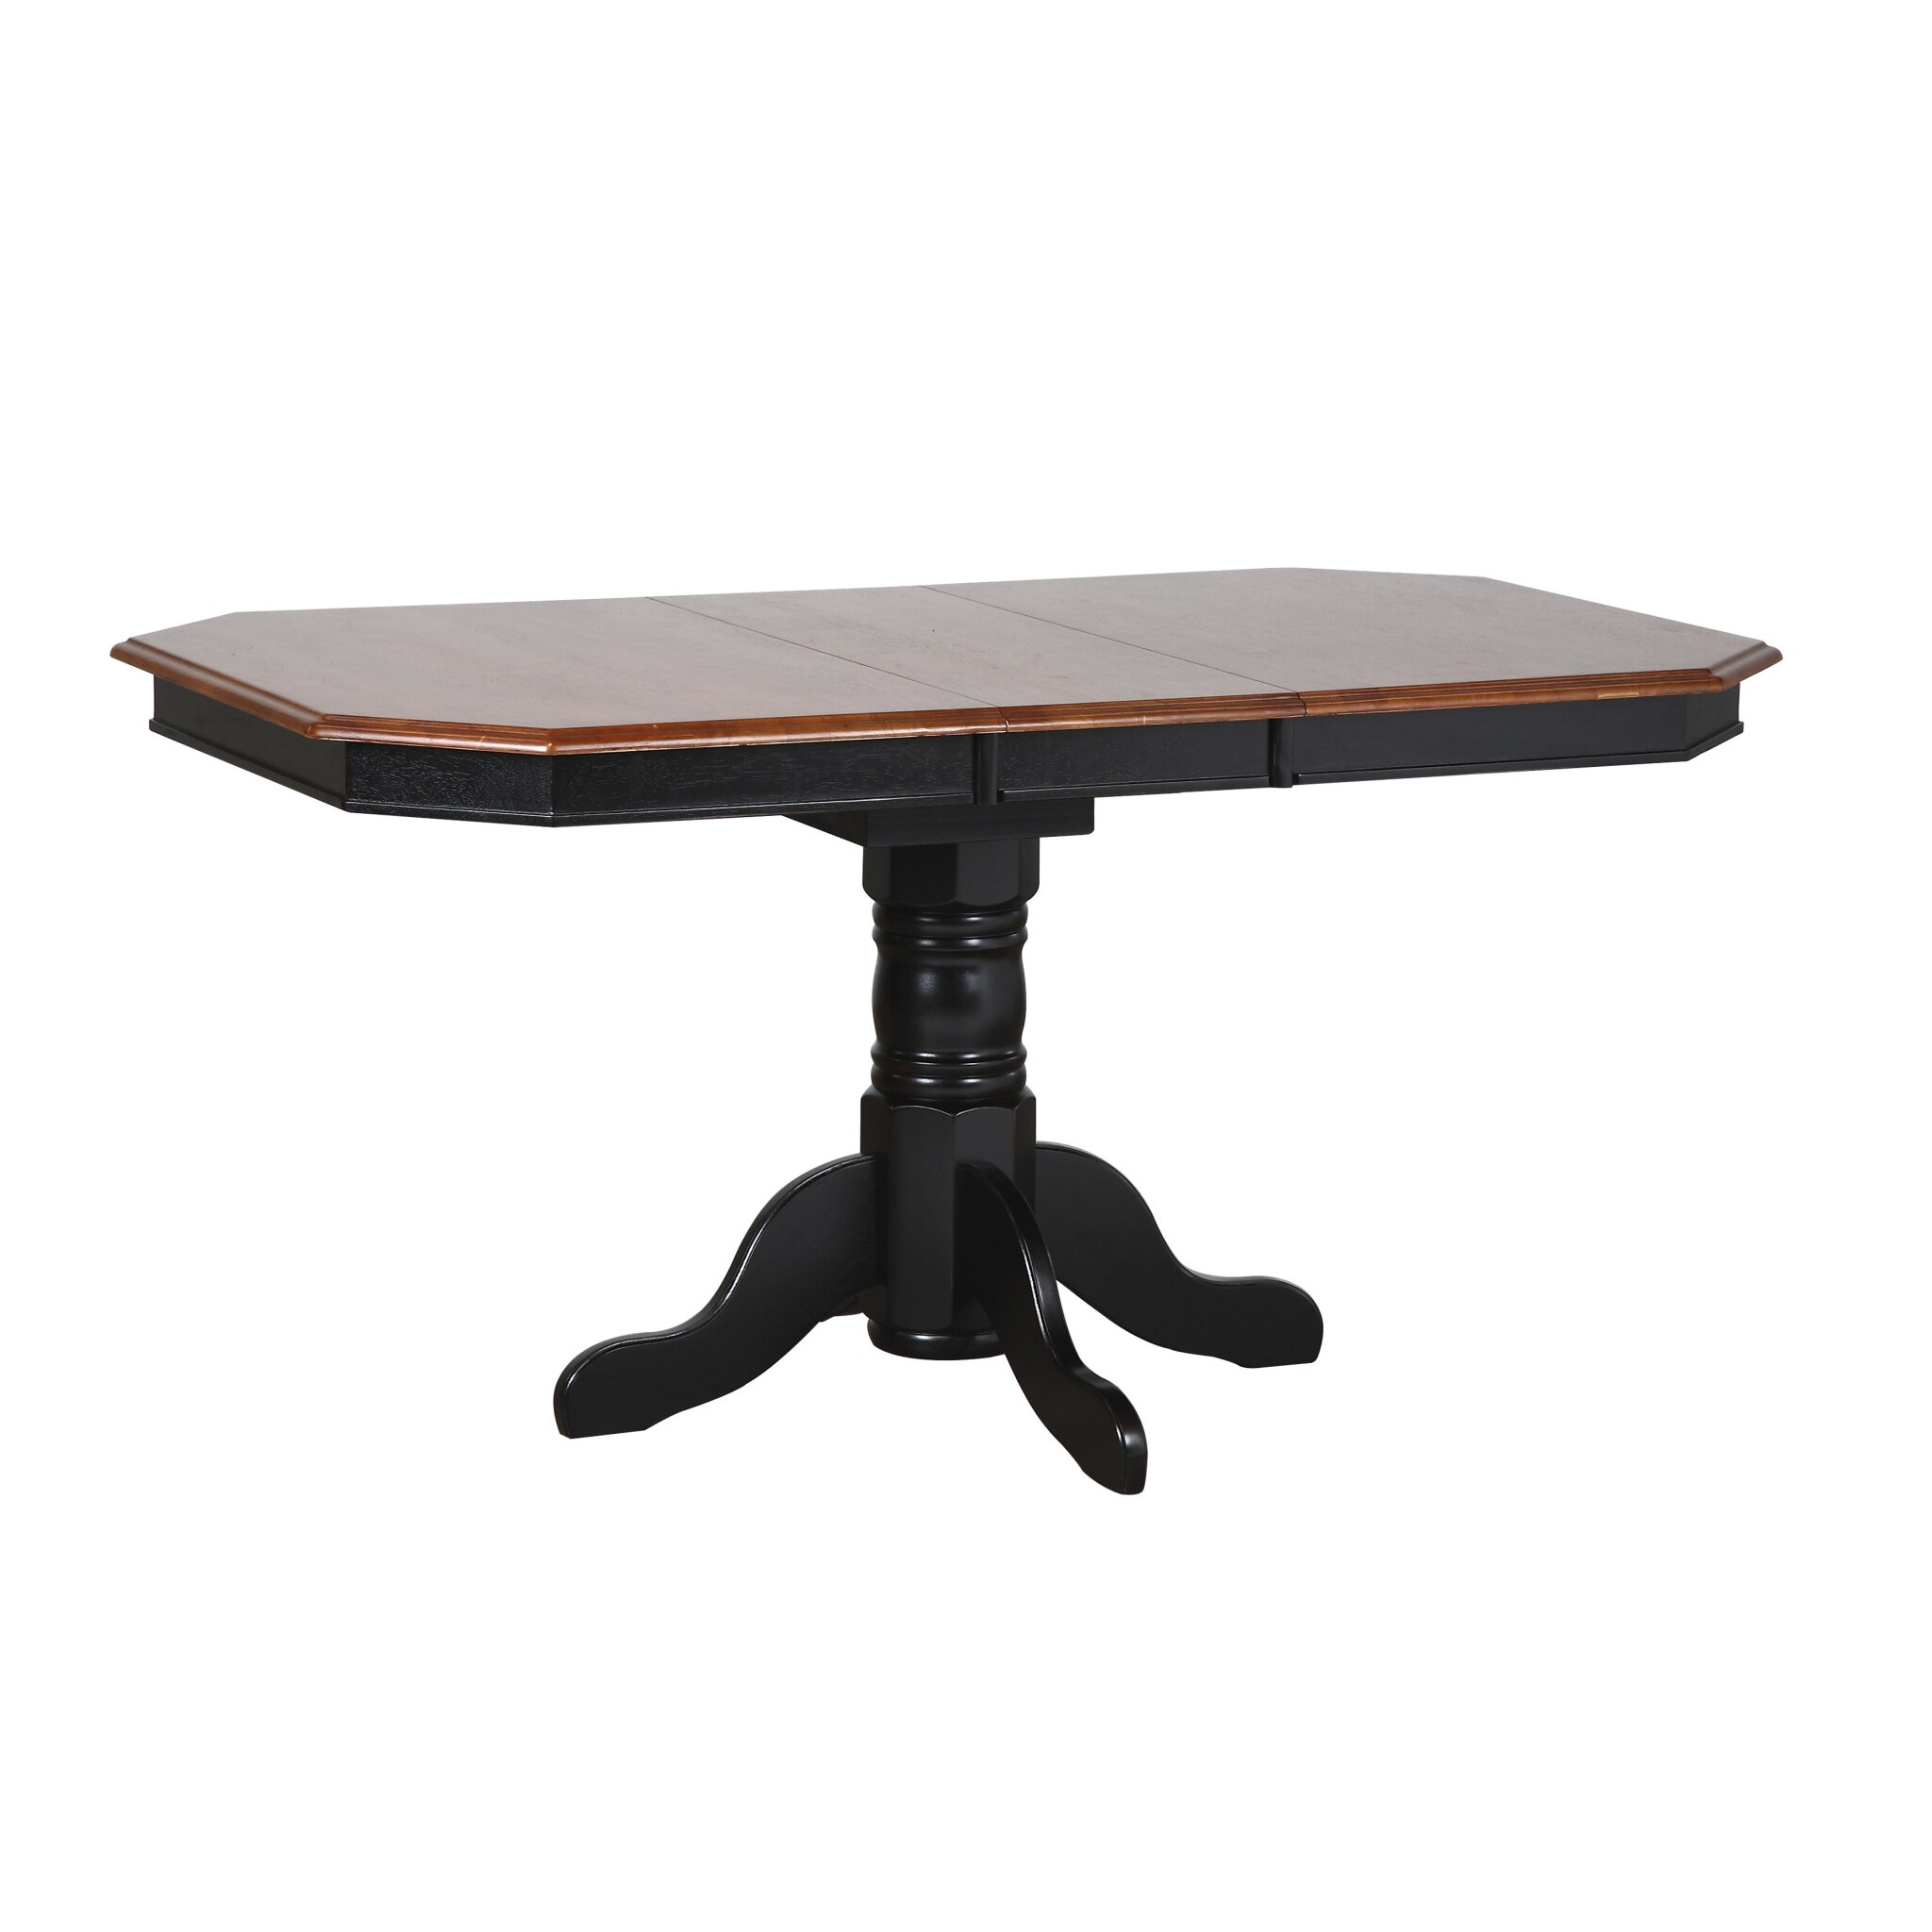 Loon Peak Banksville Extendable Dining Table amp Reviews  : Loon Peak Banksville Extendable Dining Table LOON7830 from www.wayfair.com size 2048 x 2048 jpeg 165kB